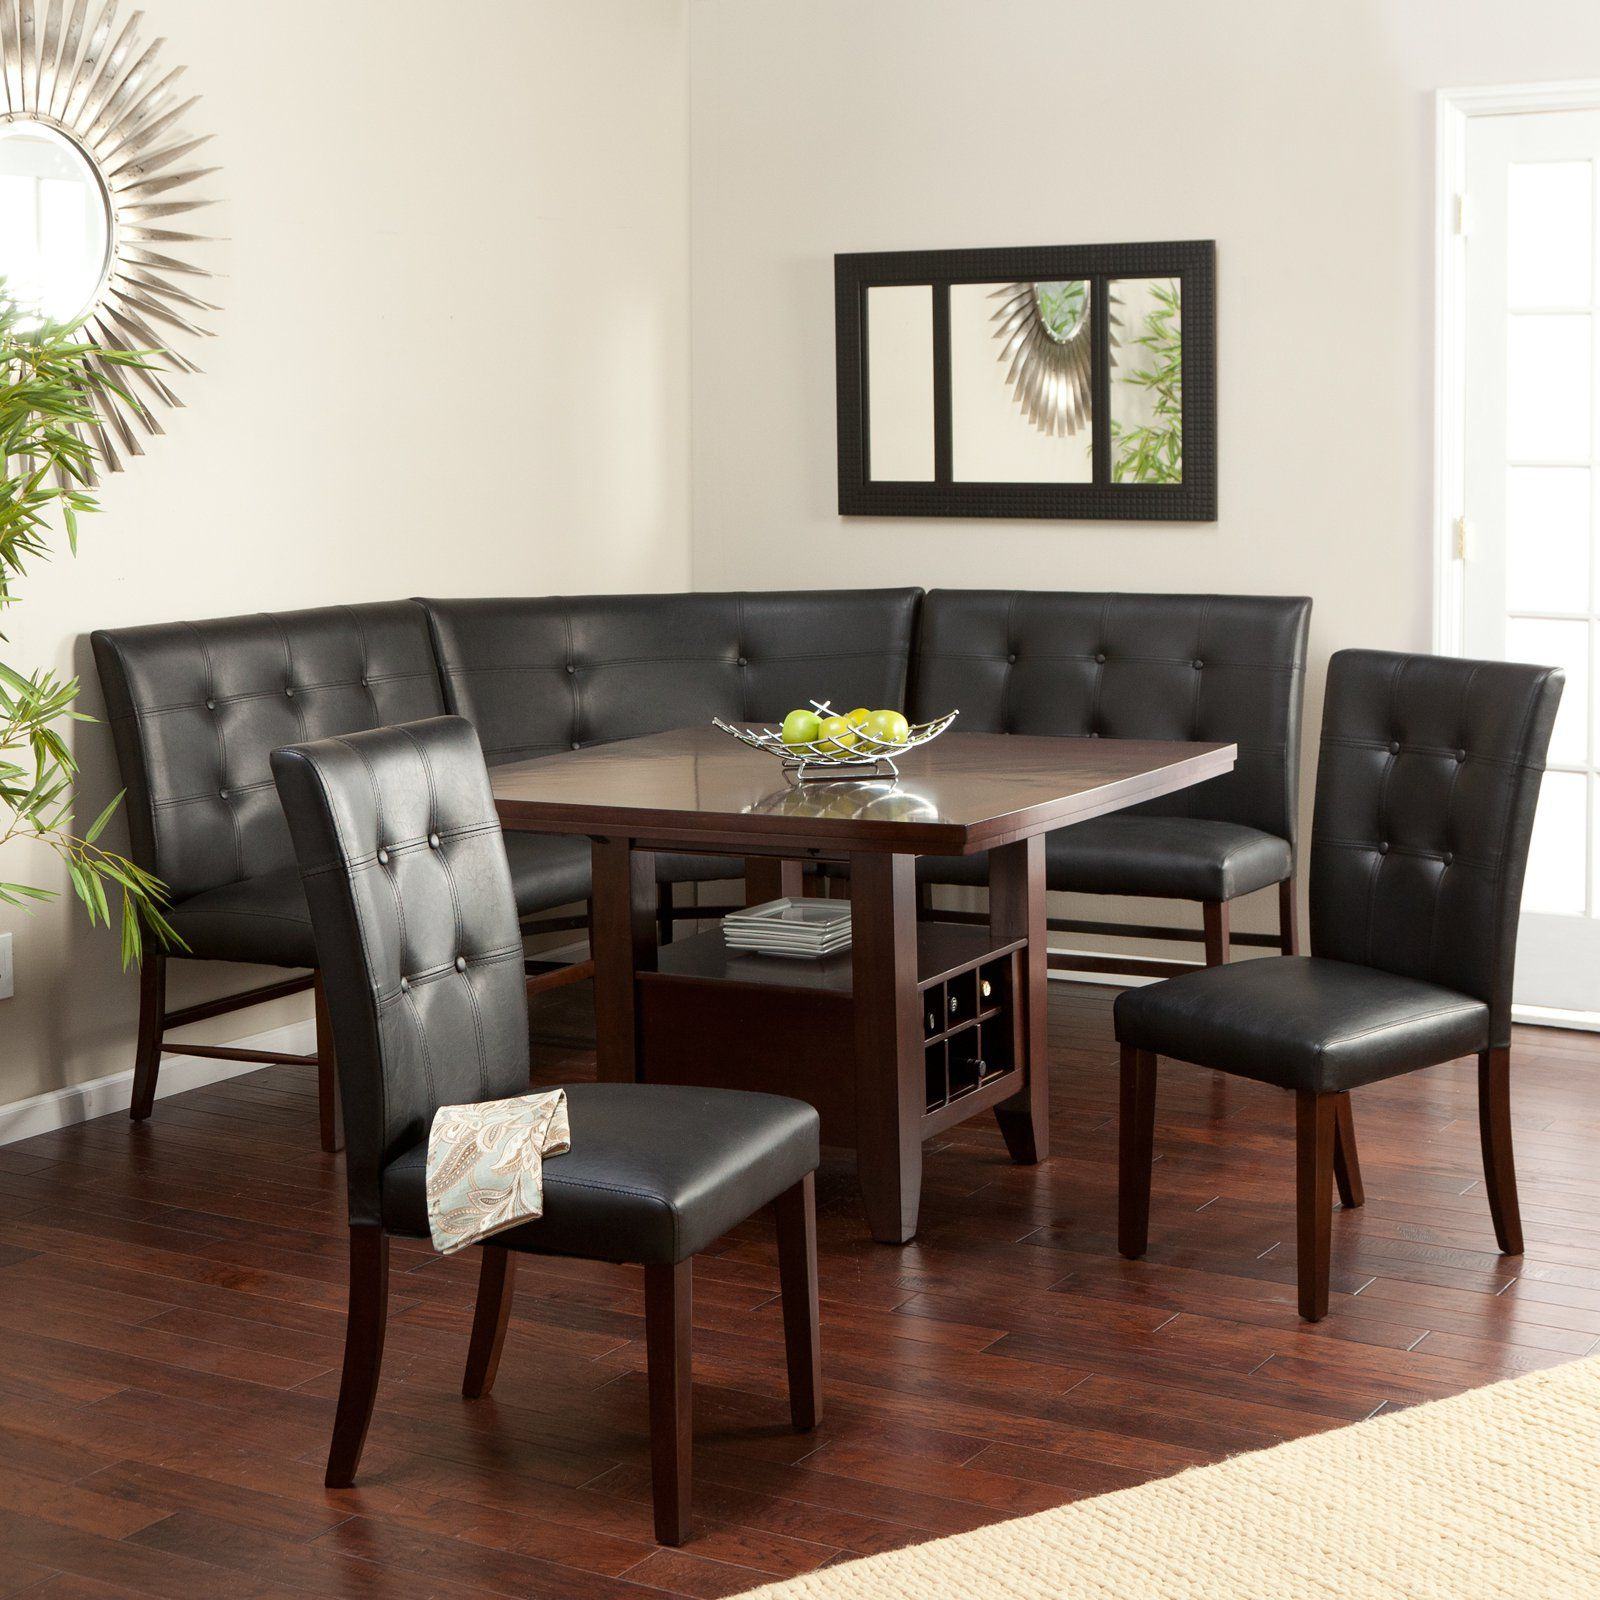 Perfect Layton Espresso 6 Piece Breakfast Nook Set   $899.98 @. Kitchen Dining  TablesDining Room SetsCorner ...